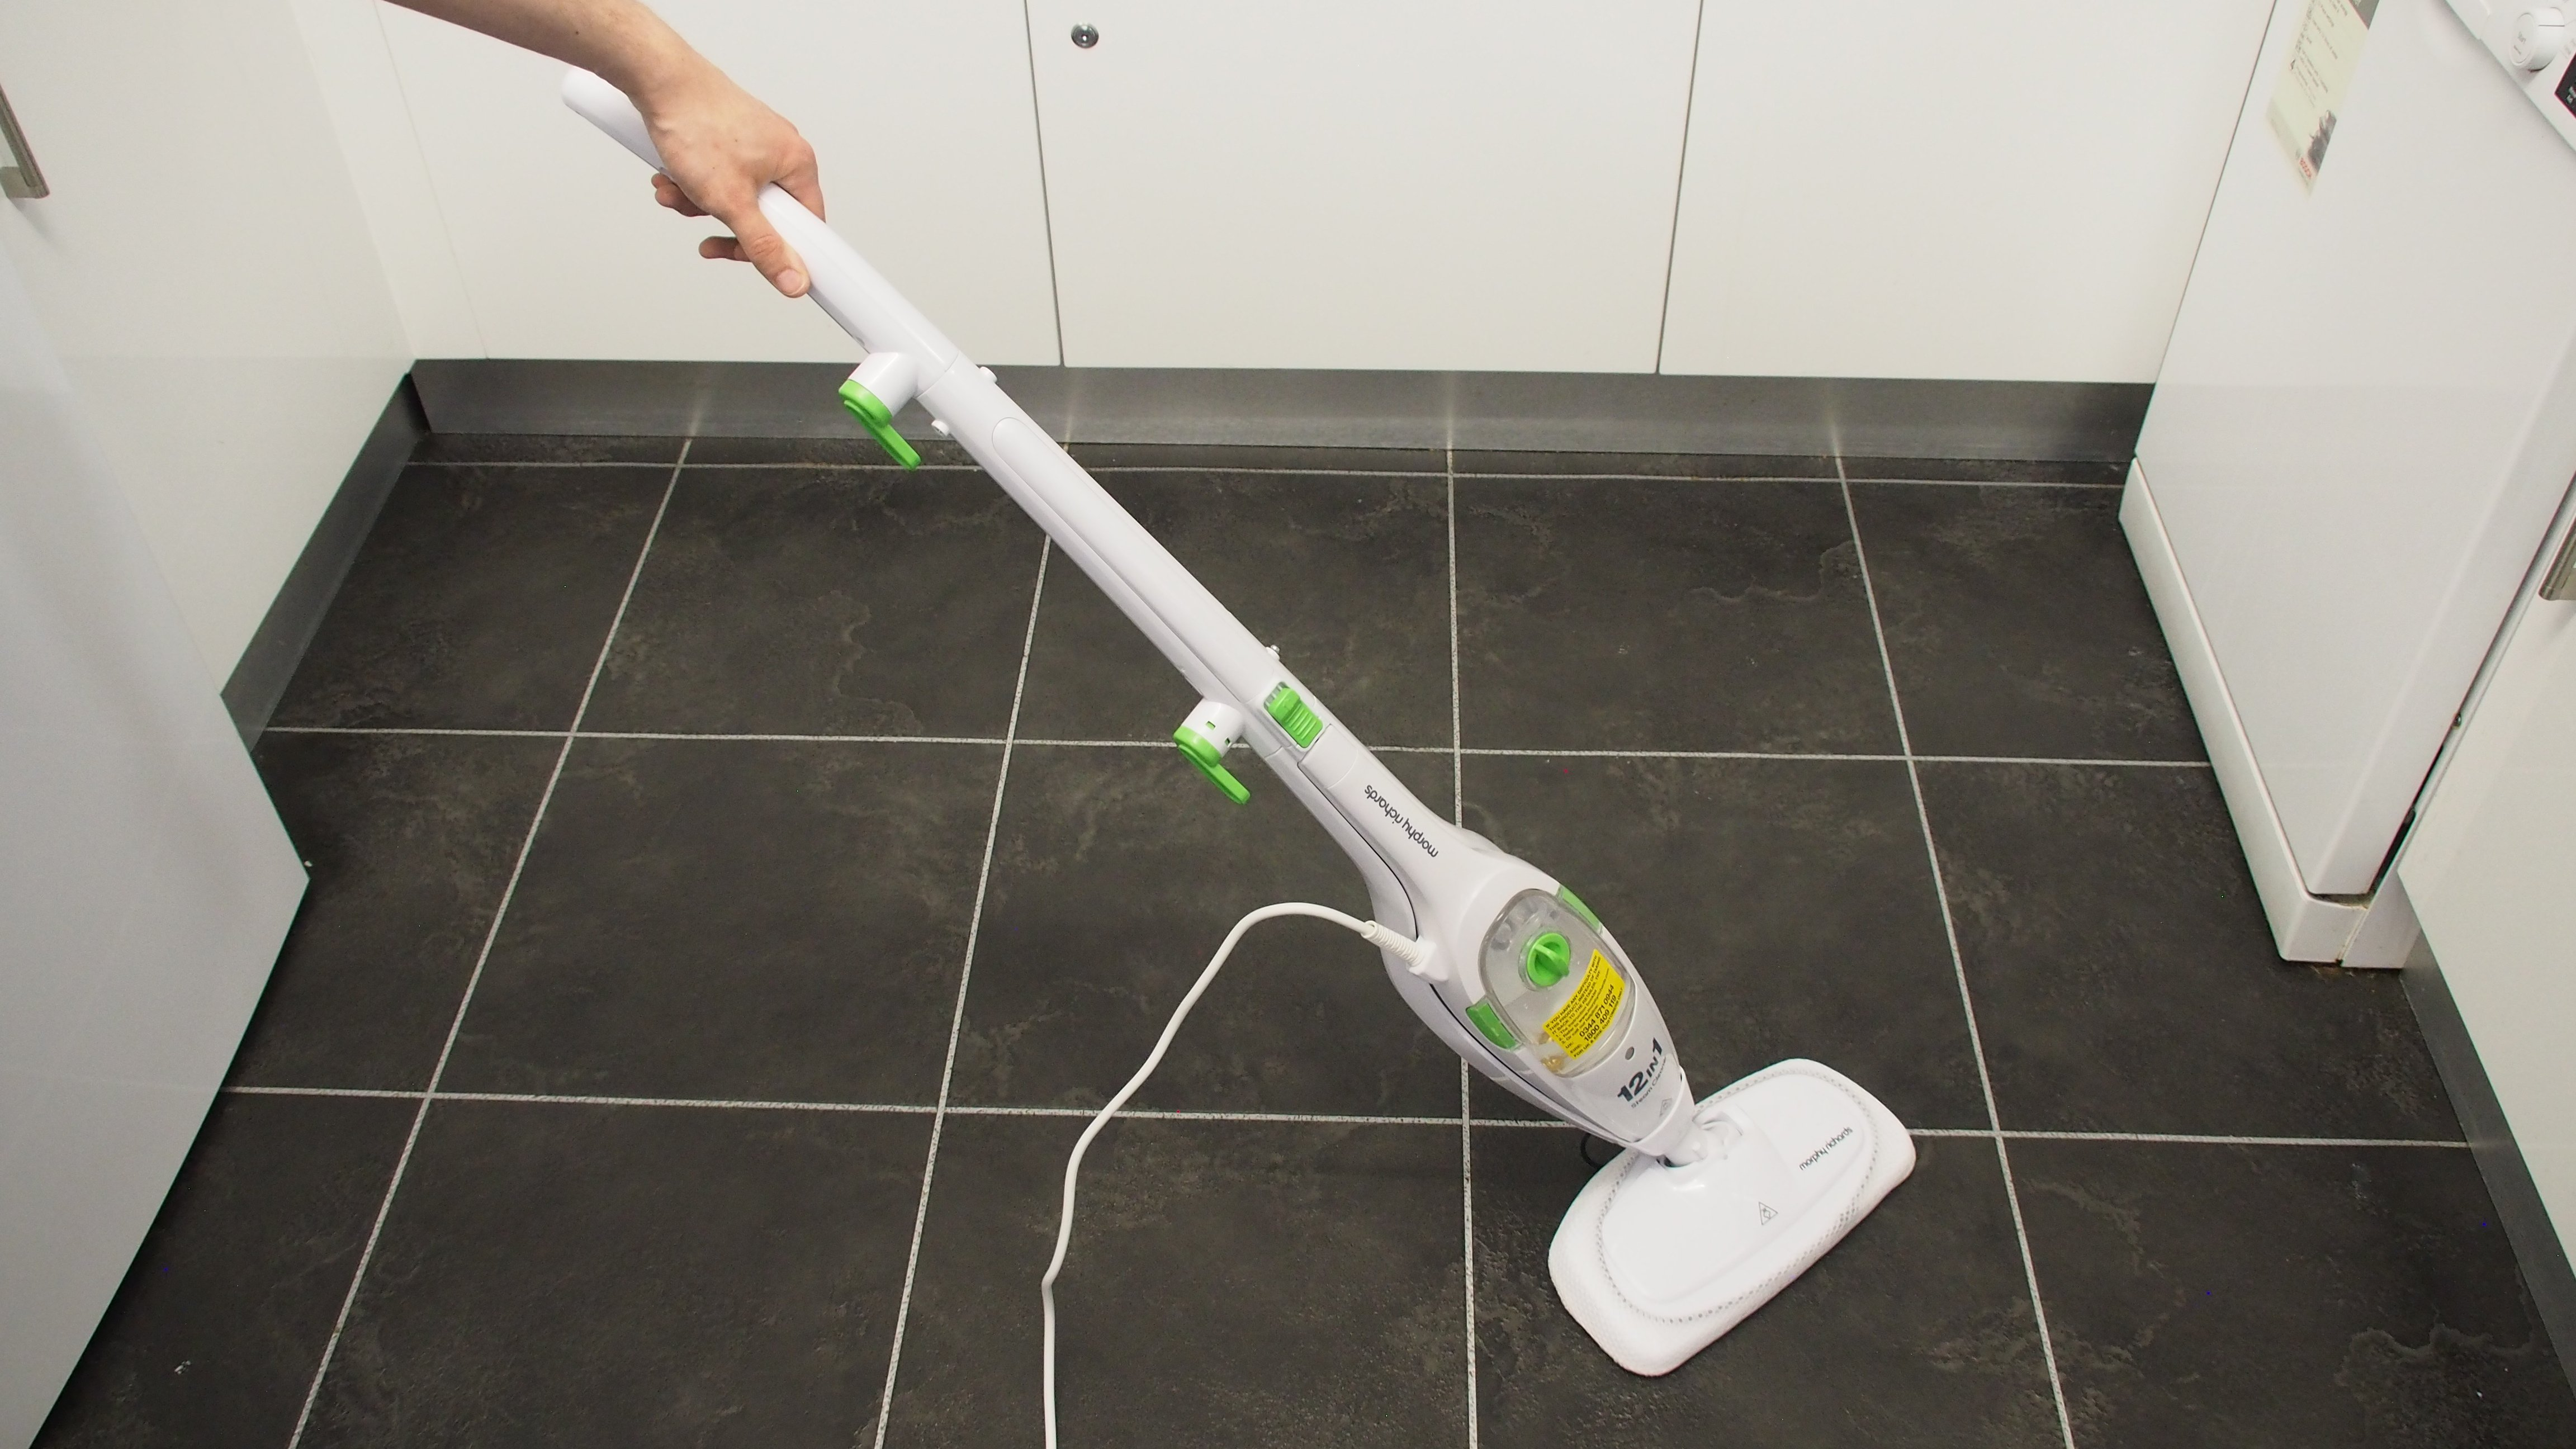 Morphy Richards 12-in-1 Upright and Handheld Steam Cleaner review | Expert Reviews